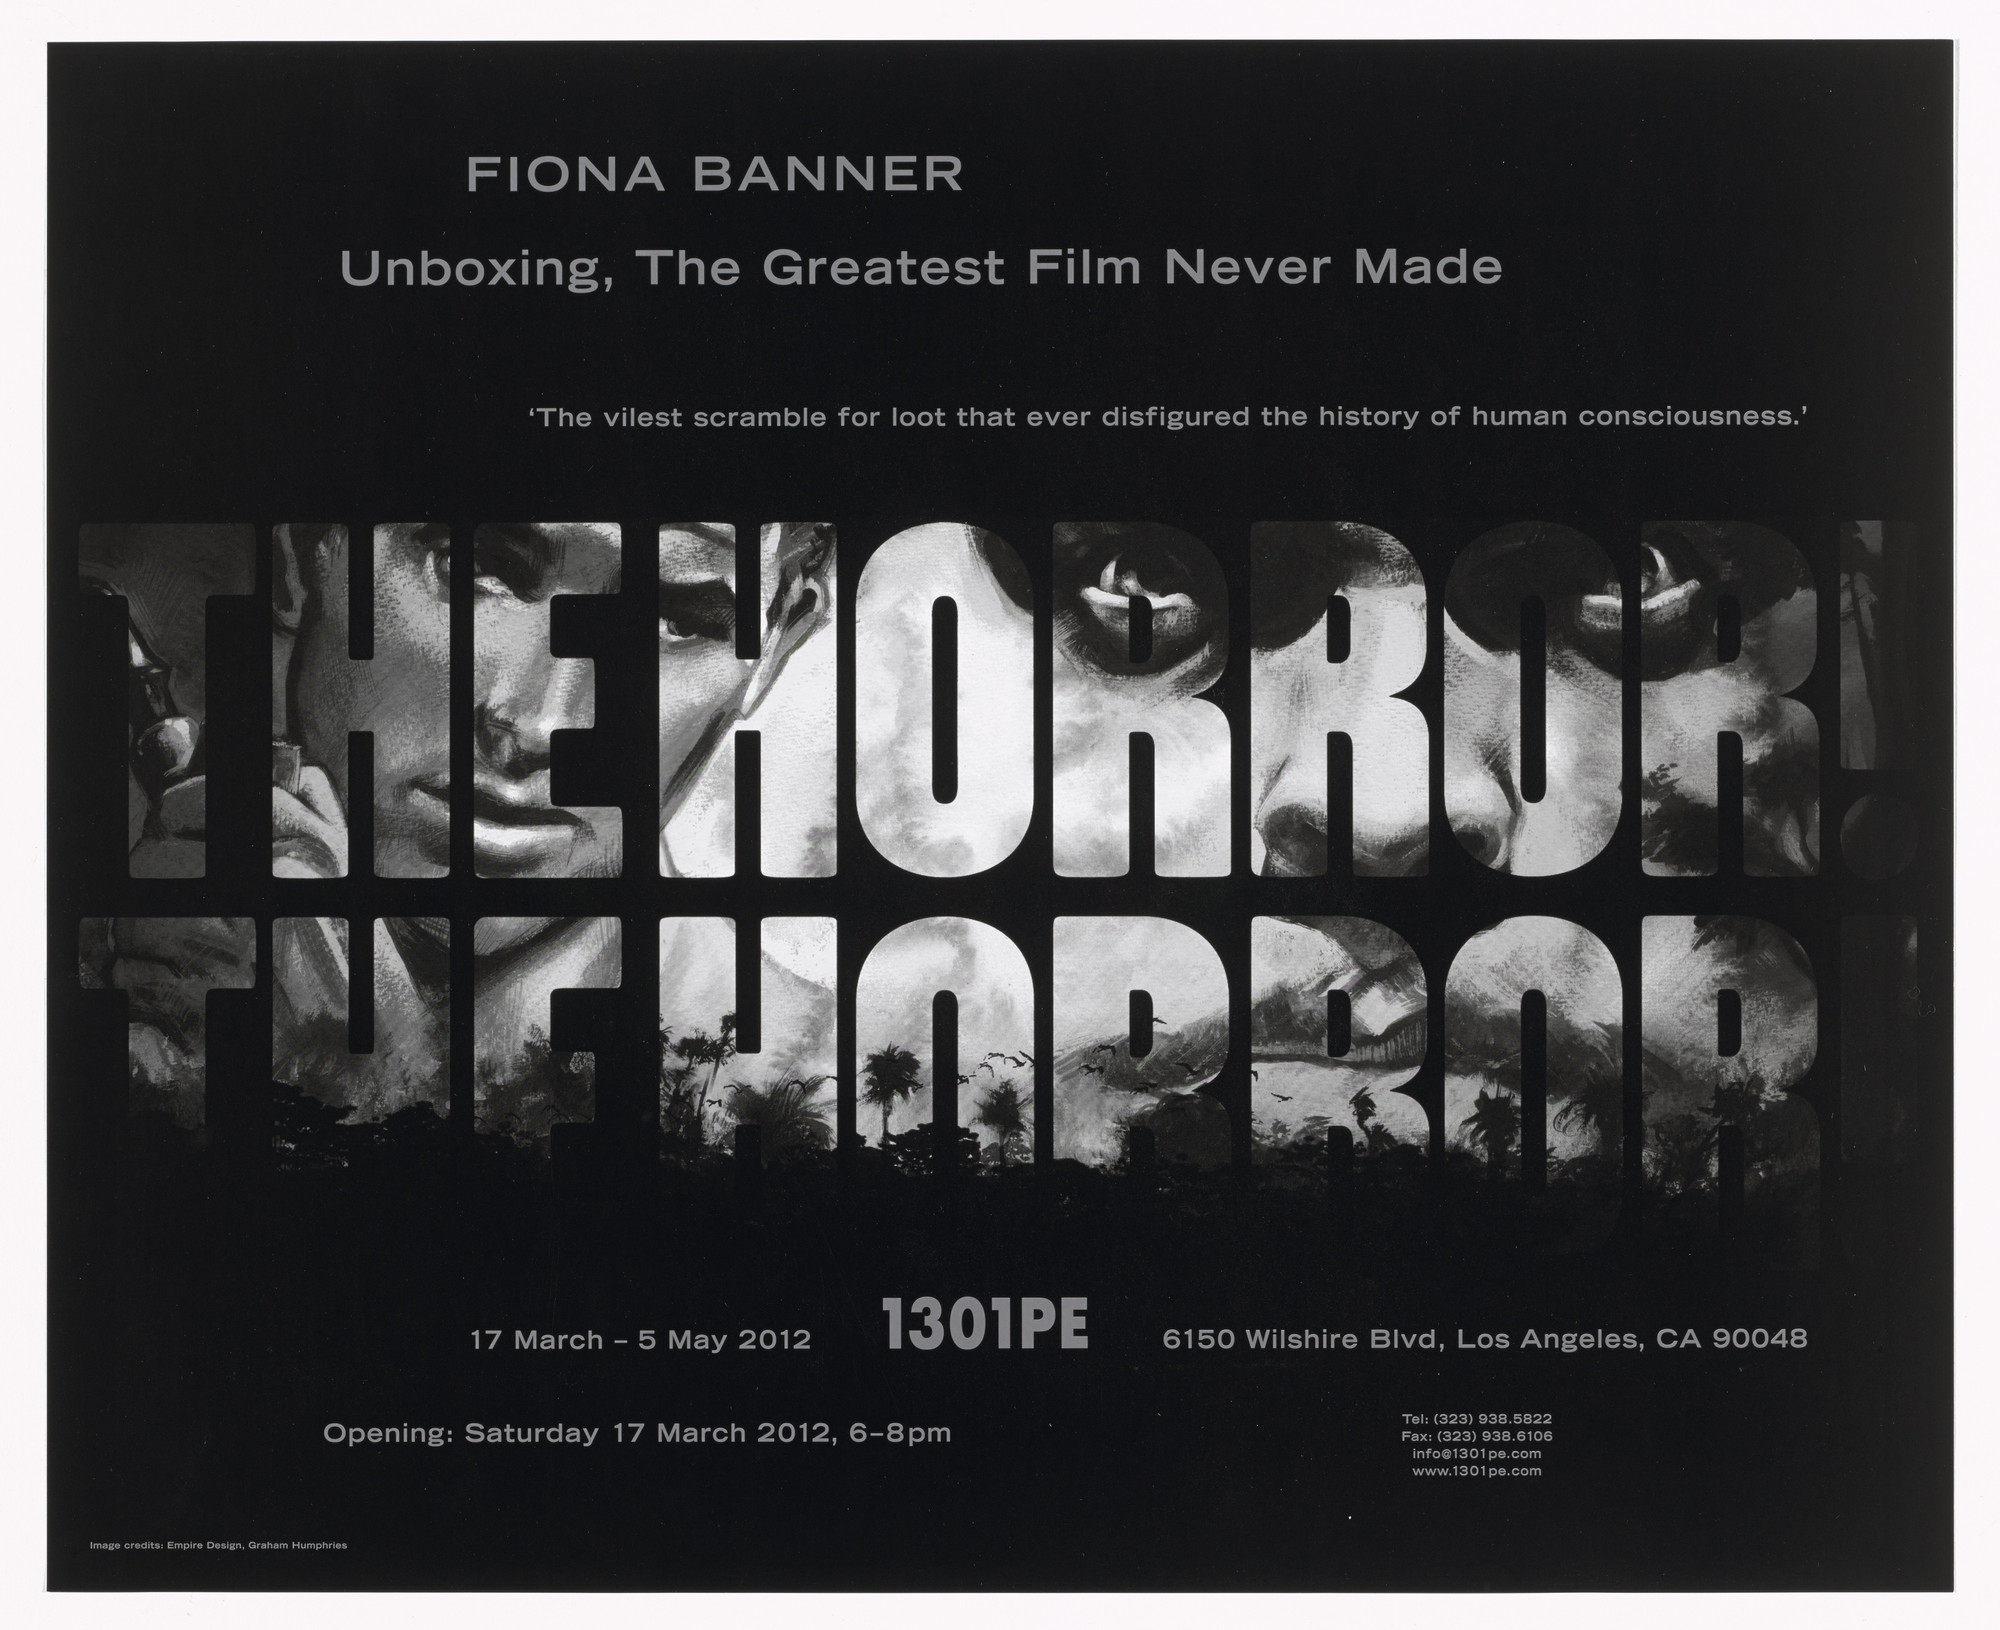 Fiona Banner. Poster for The Greatest Film Never Made, 1301PE, Los Angeles, March 17–May 5, 2012. 2012